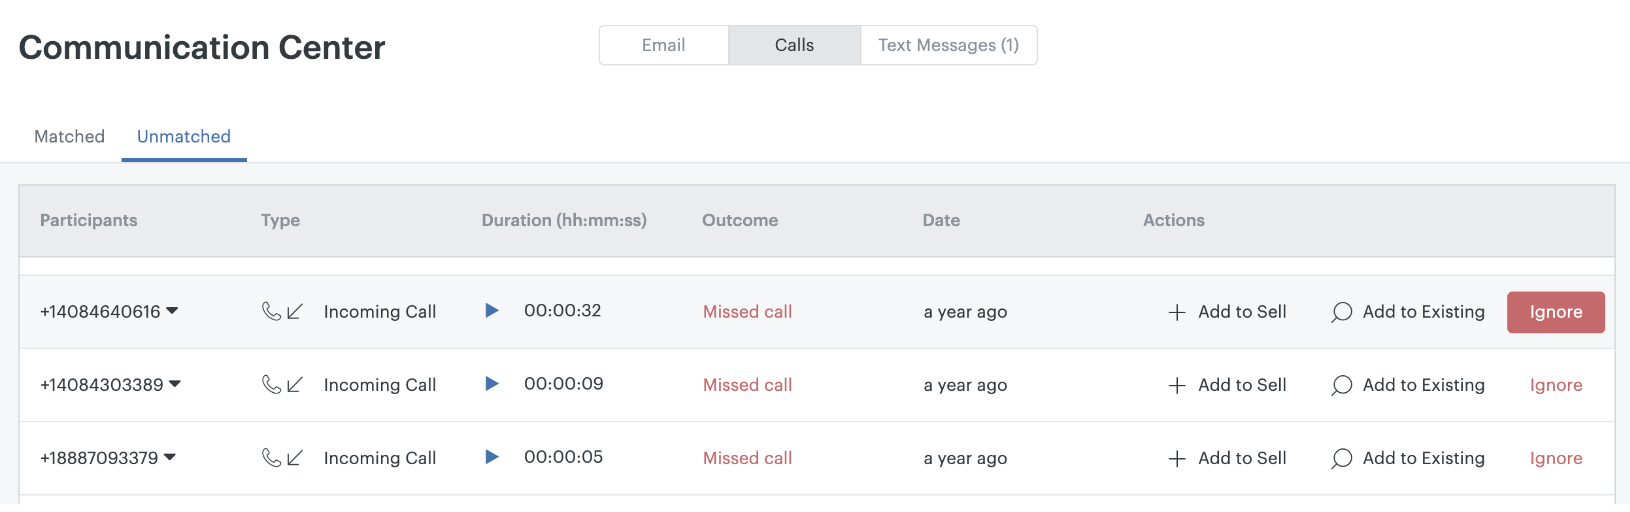 Sell ignore unmatched calls